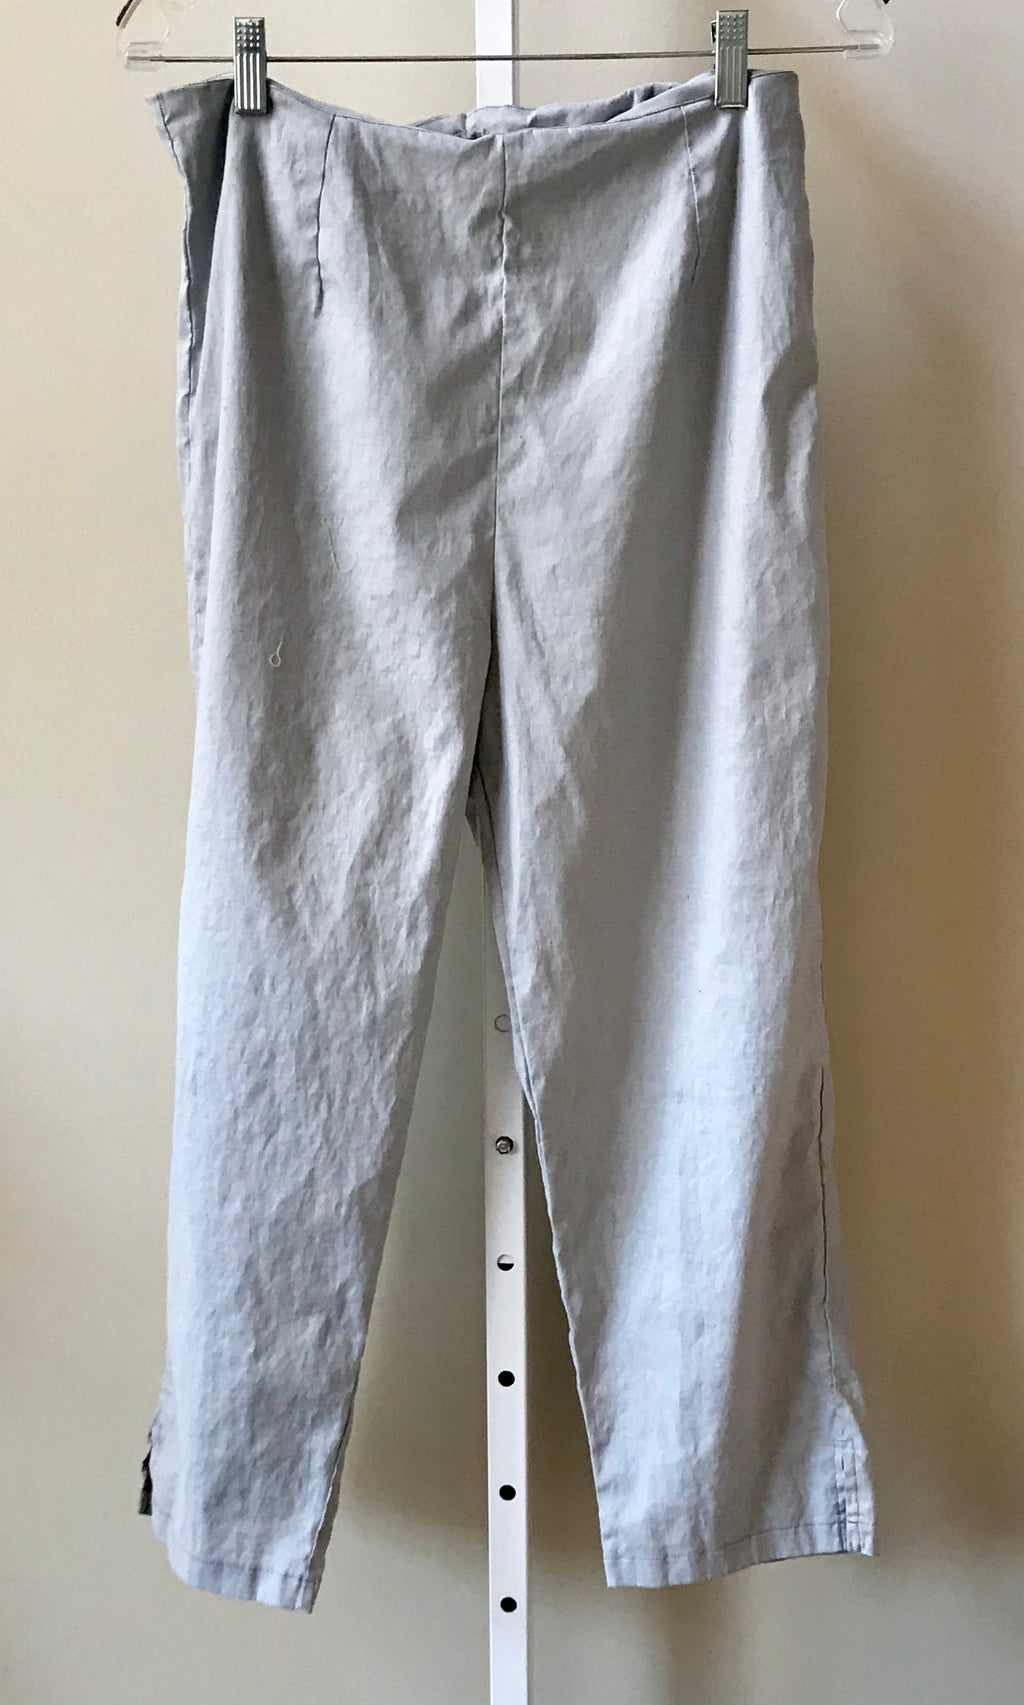 Robin Kaplan Spring/Summer 2019 Capri Pant in Pacifica, Sz 2 on Sale